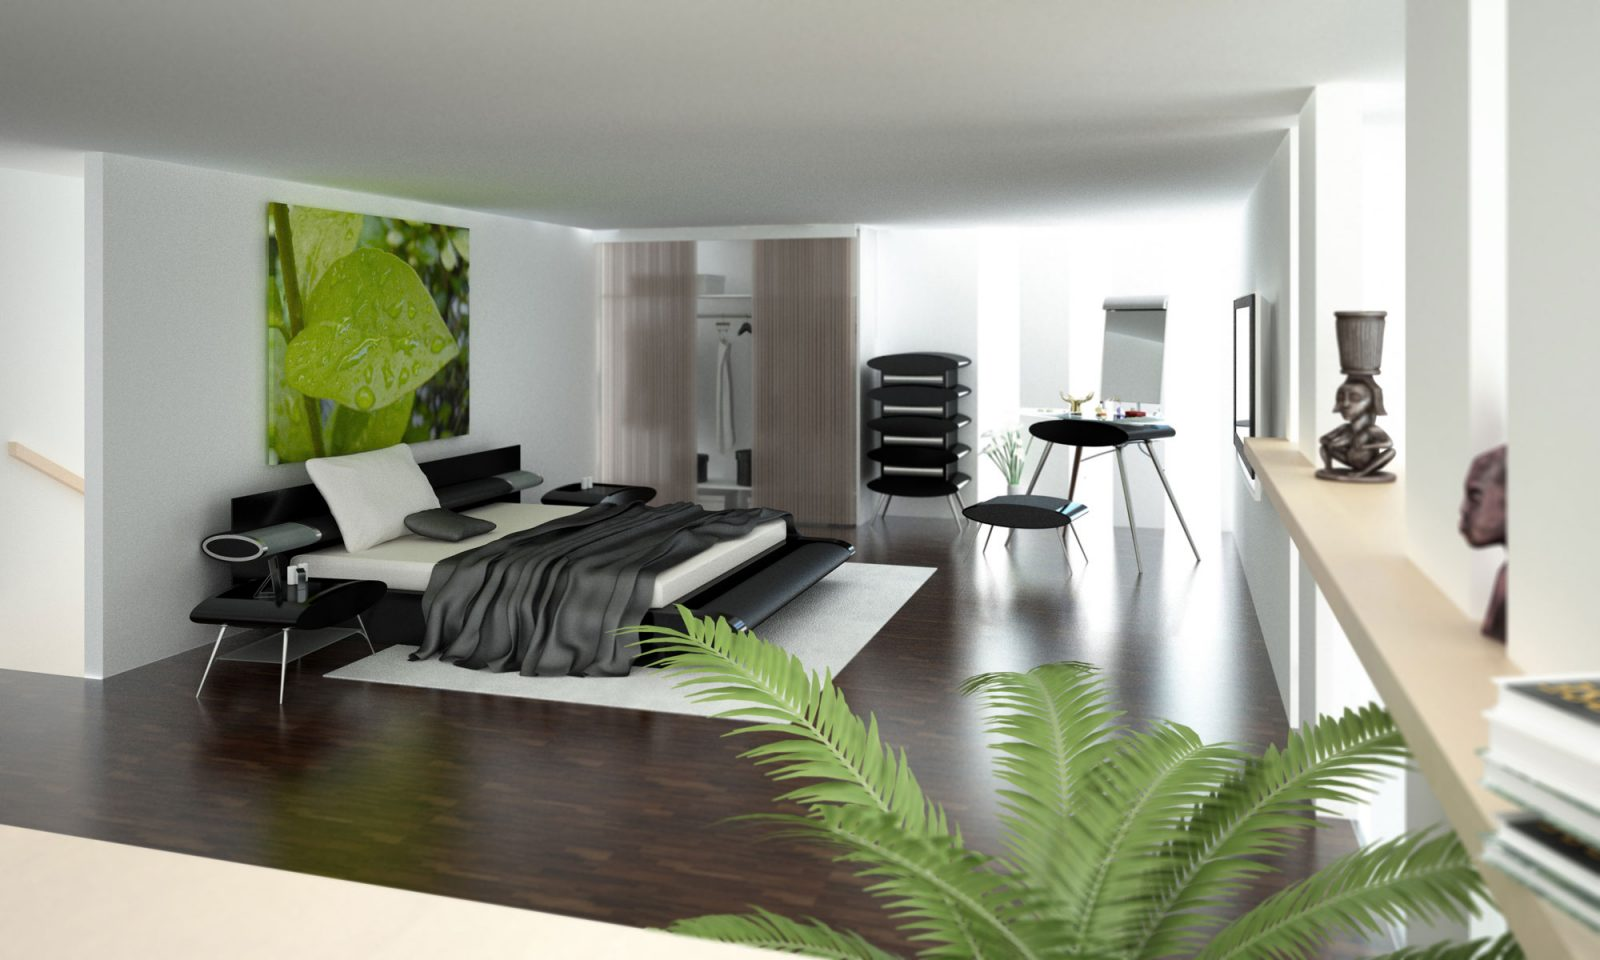 Townhouse Bedroom Interior Design : Townhouse Bedroom Interior Design : Elegant Bedroom Design Ideas